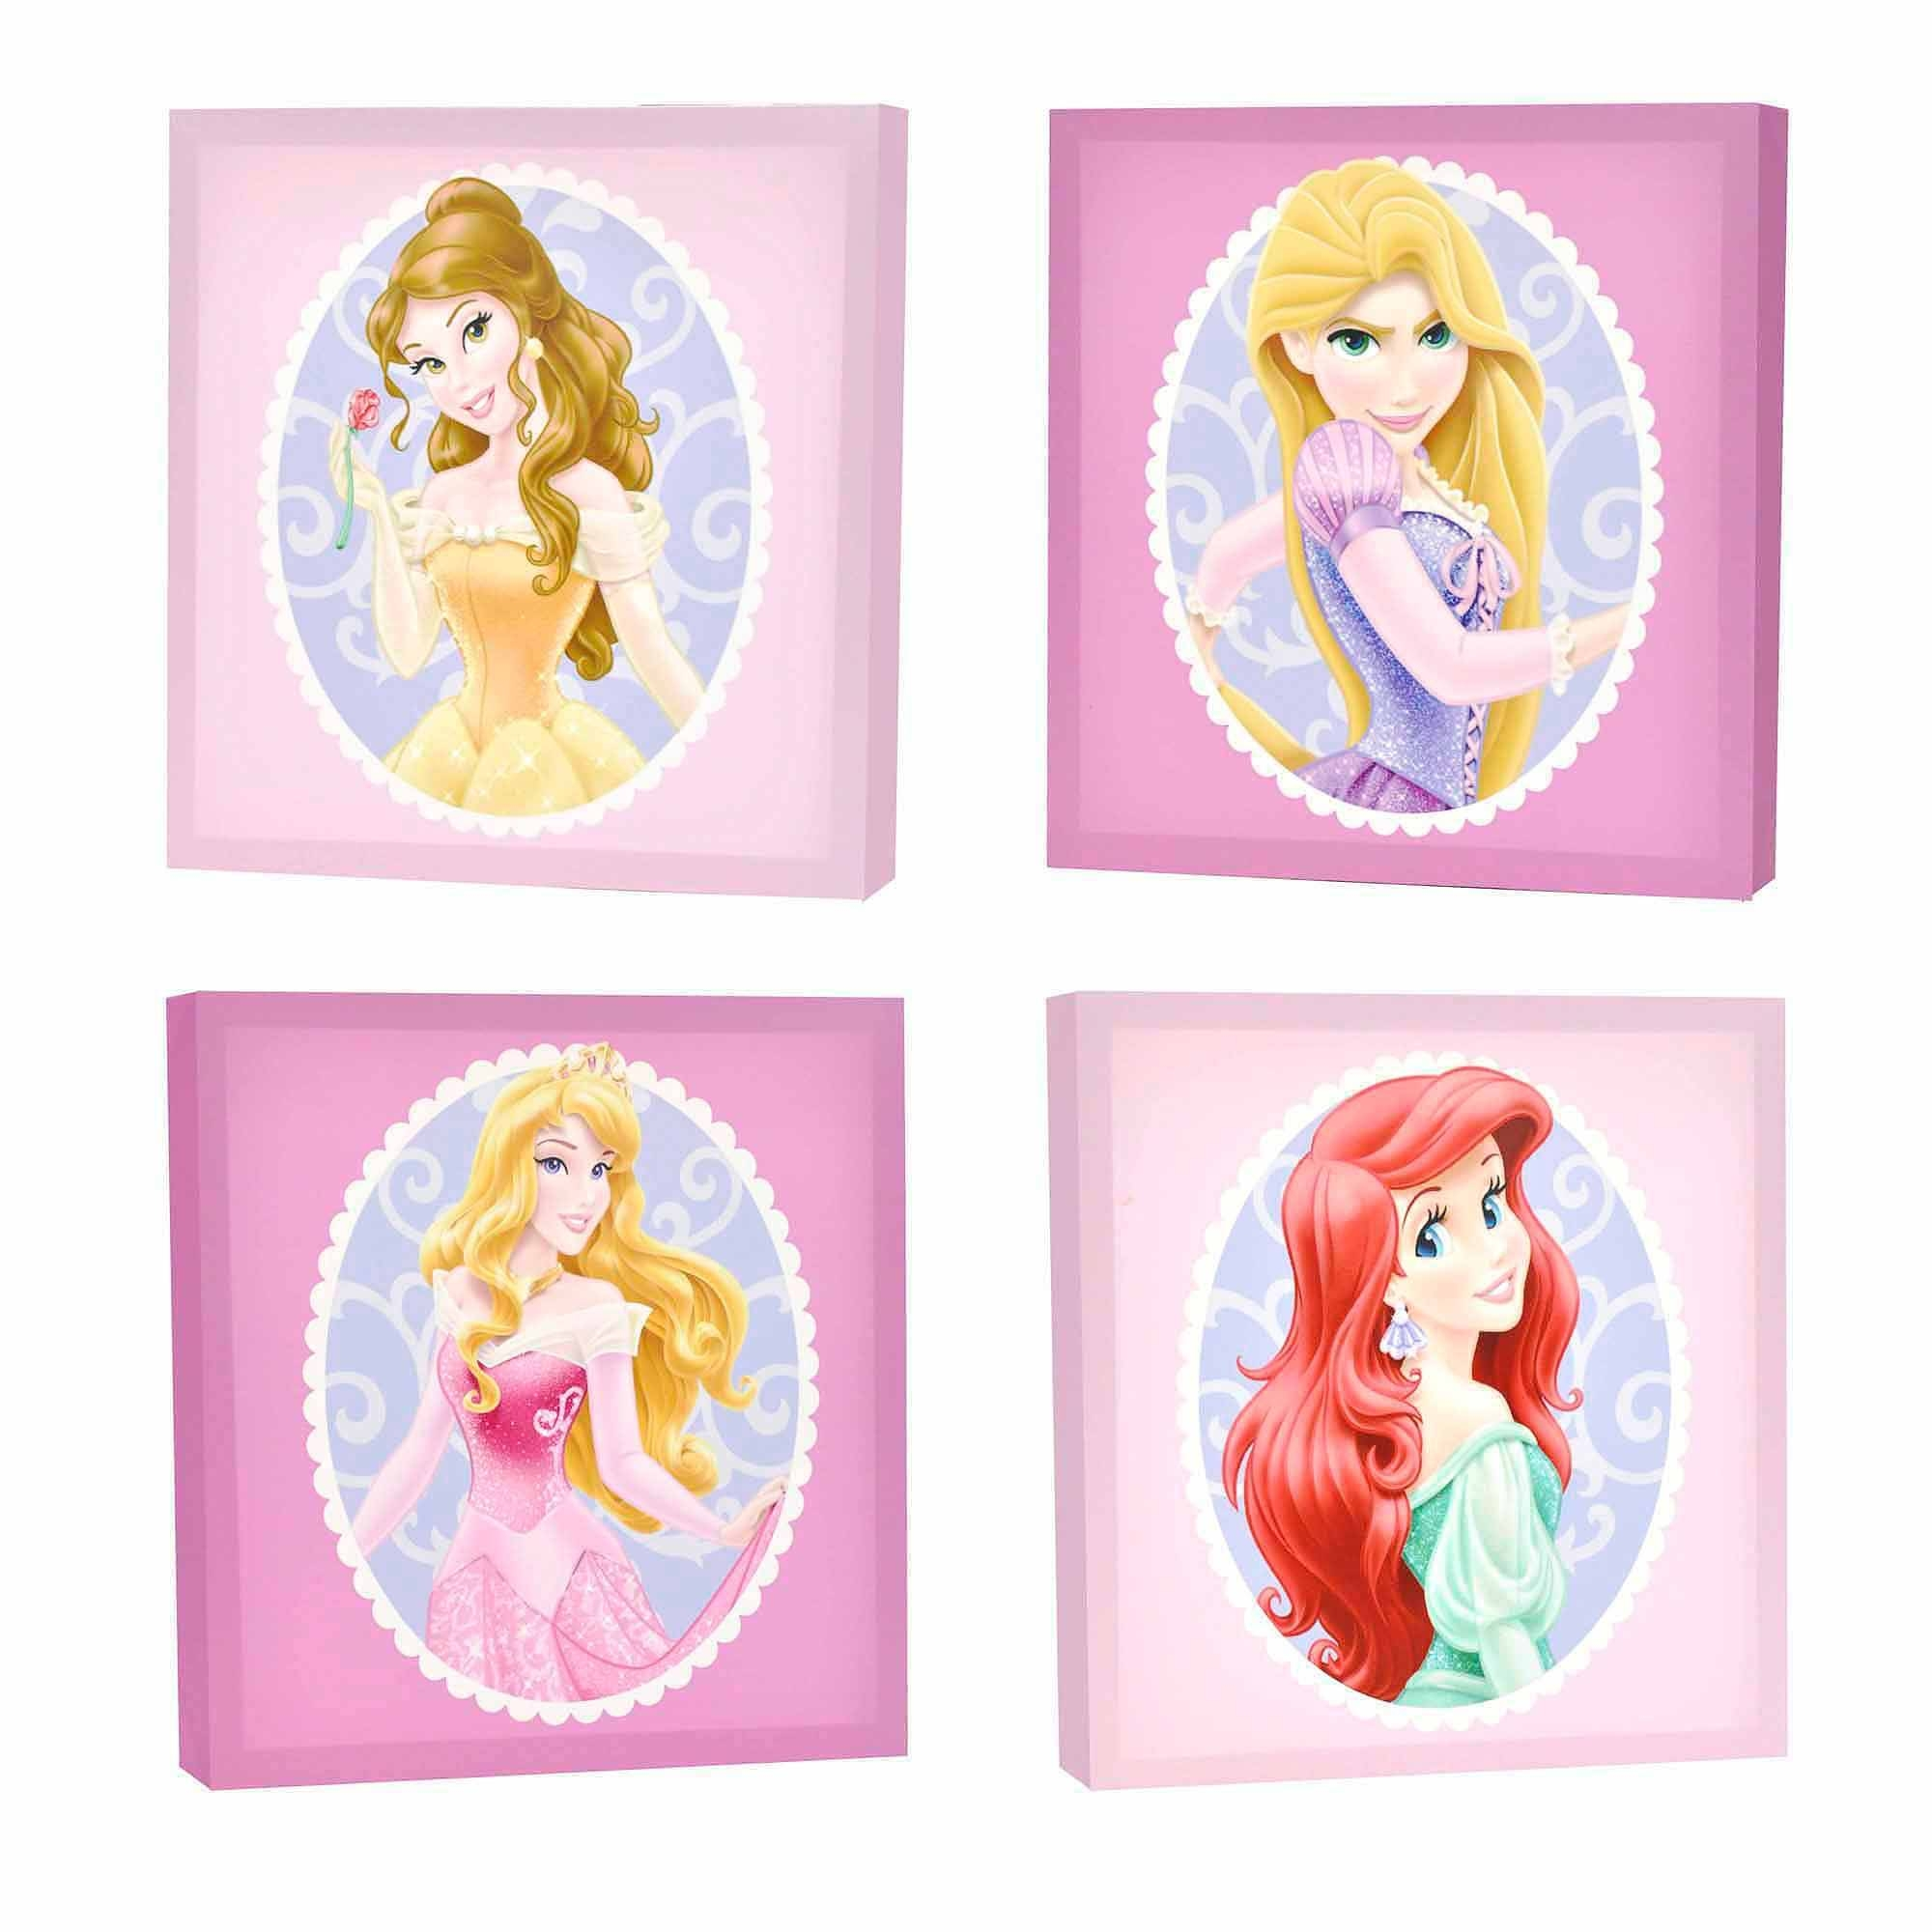 Impressive Decoration Princess Wall Art Homely Idea Get The Deal For Current Disney Princess Wall Art (View 15 of 20)